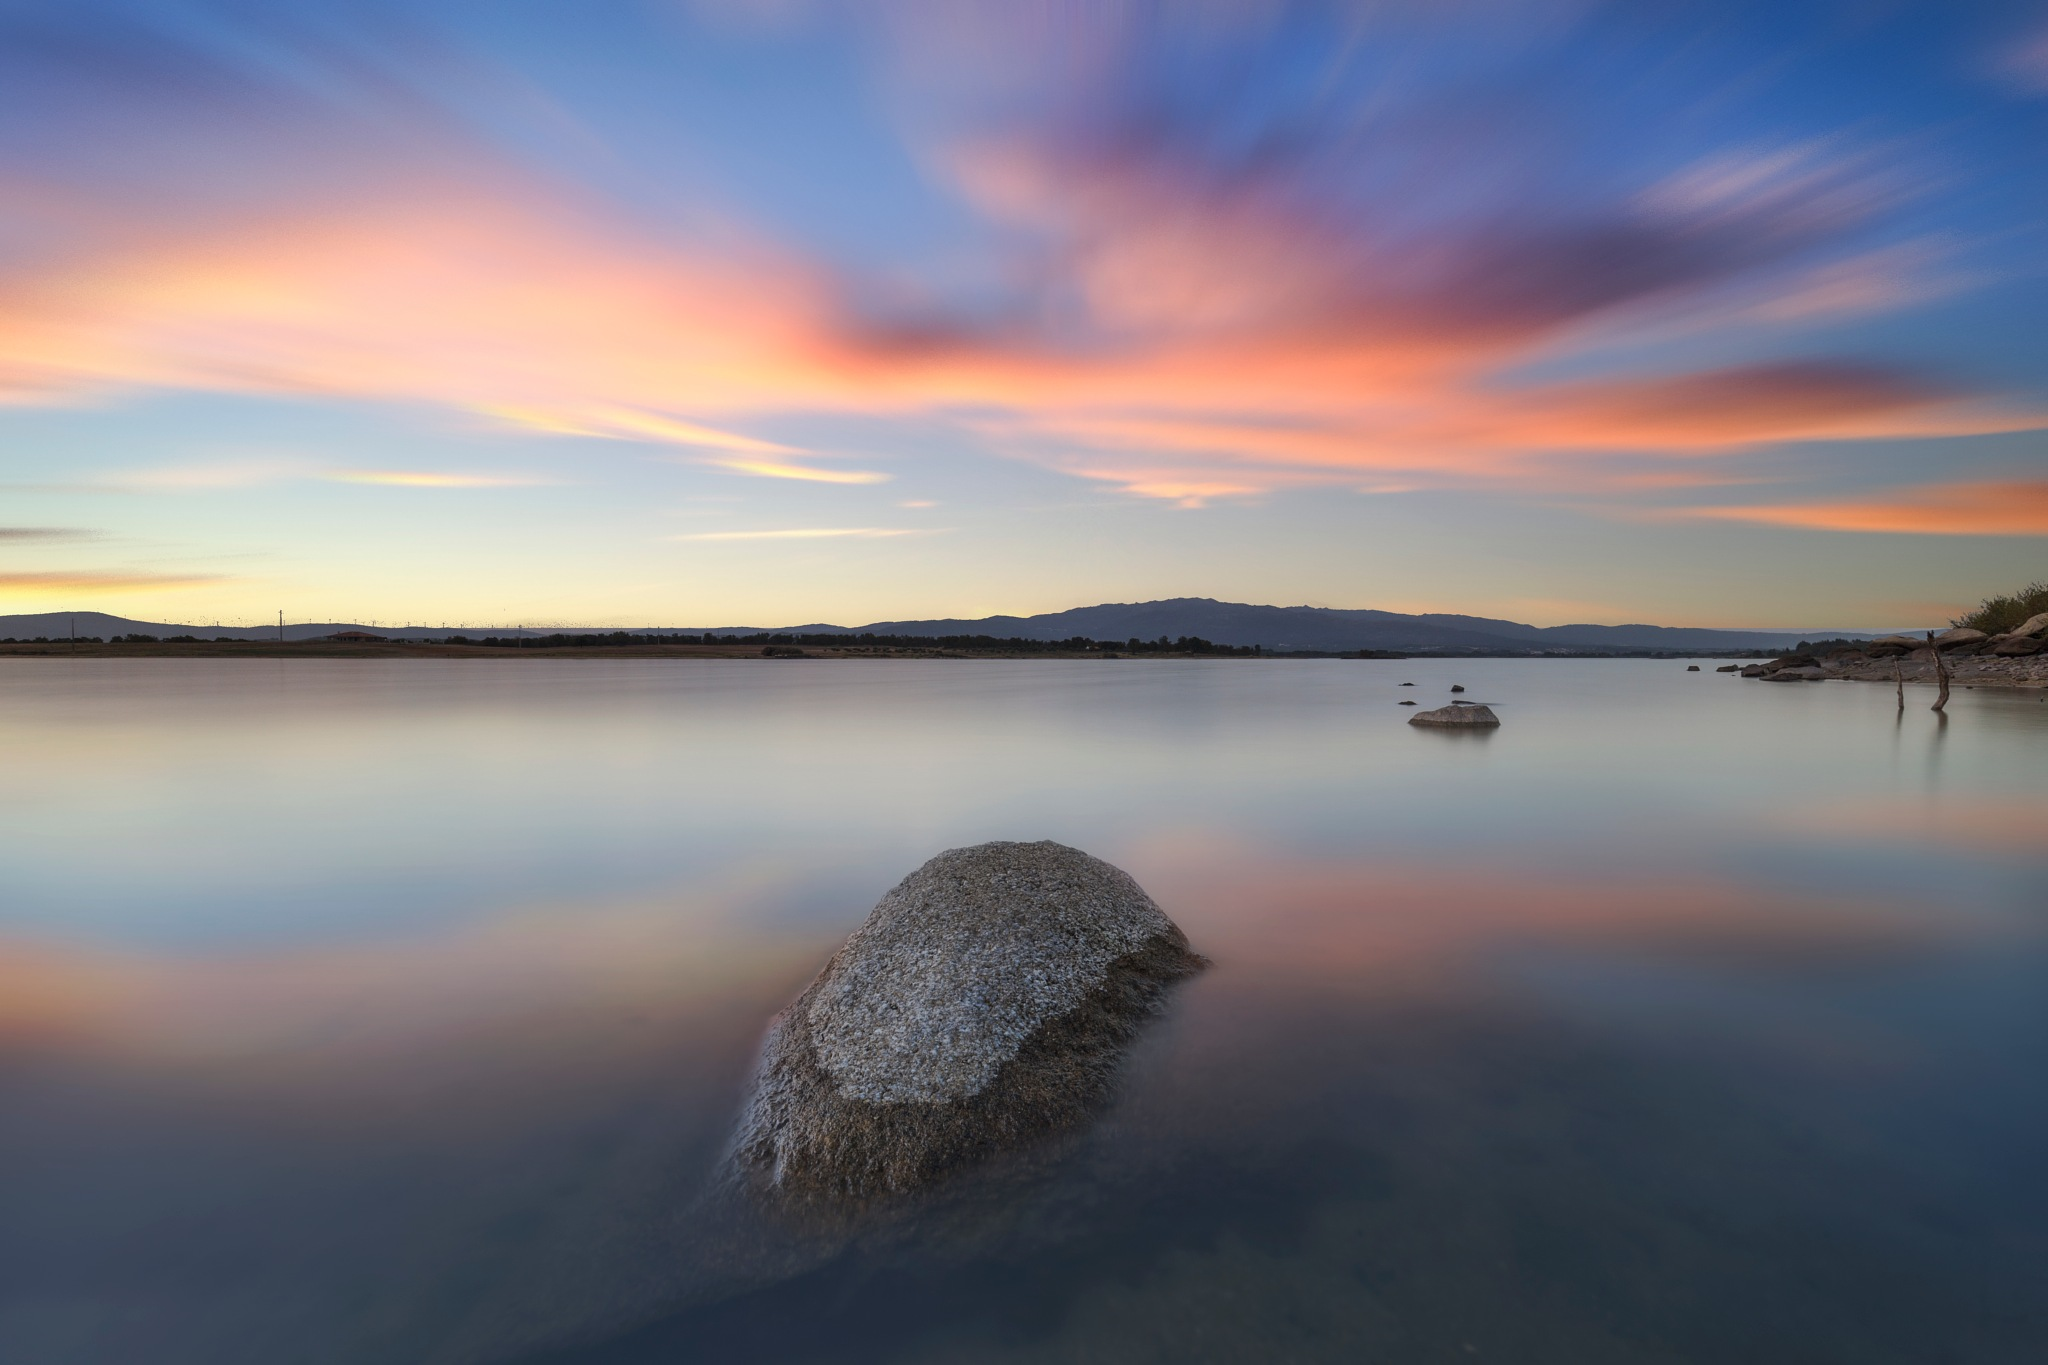 The Age of Hope  by Pedro Quintela